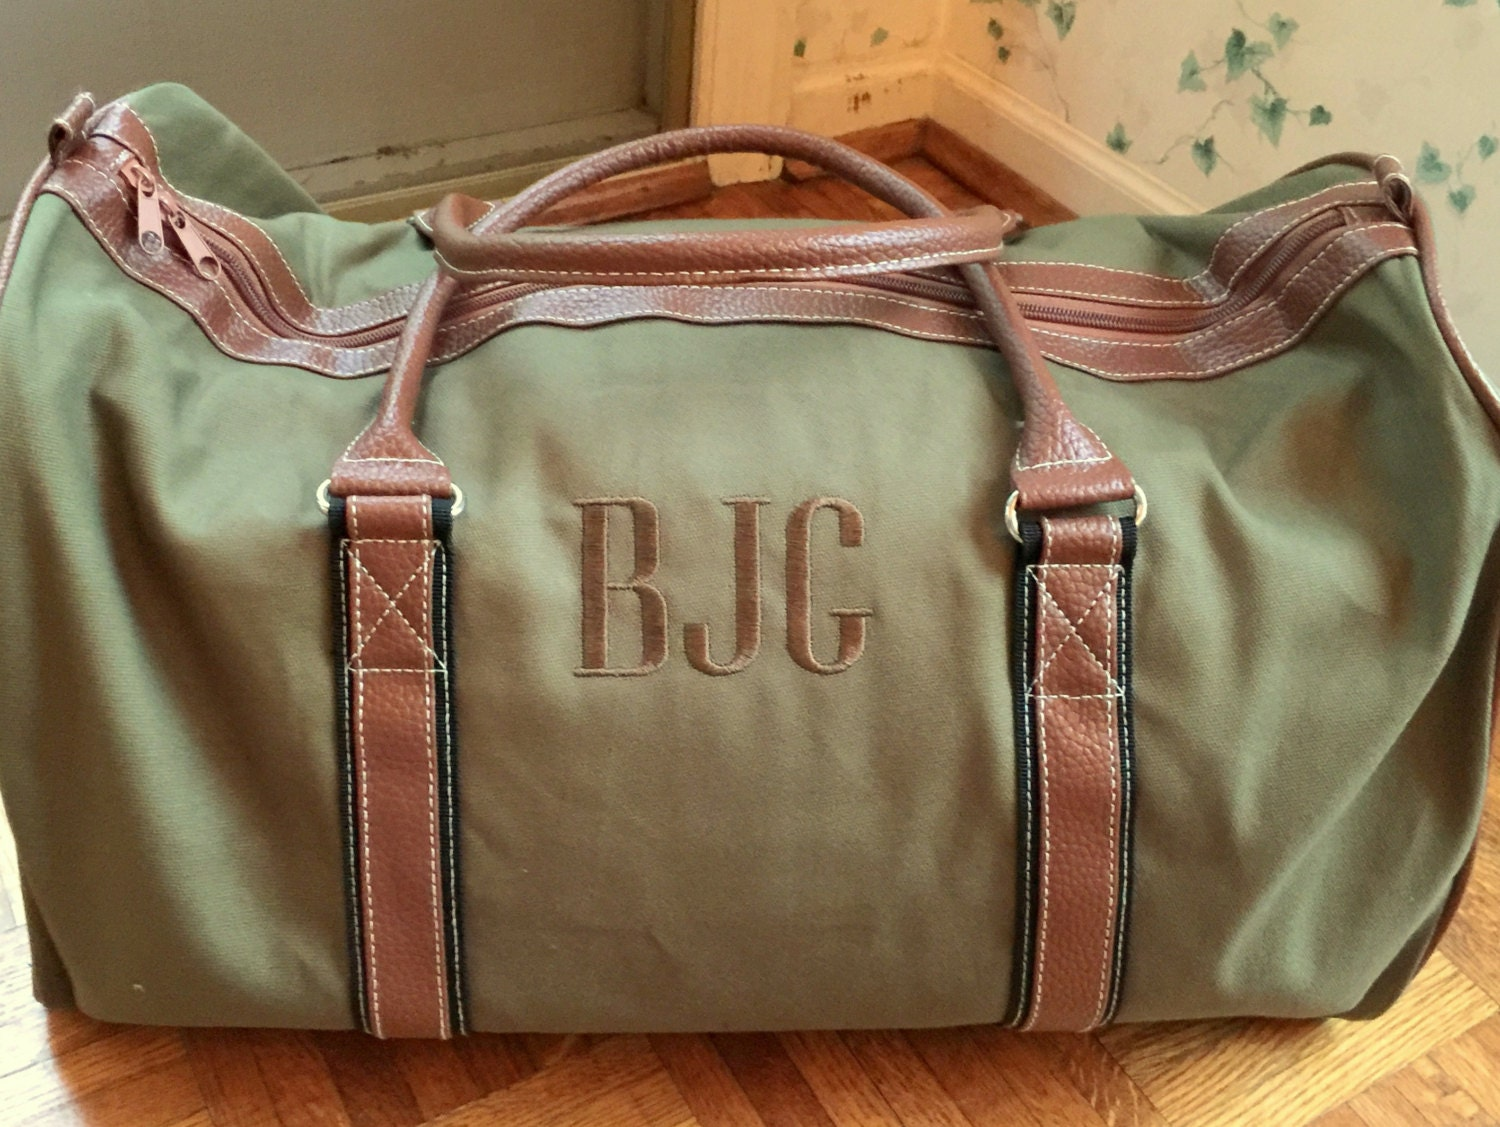 Personalized men s duffle bag monogrammed